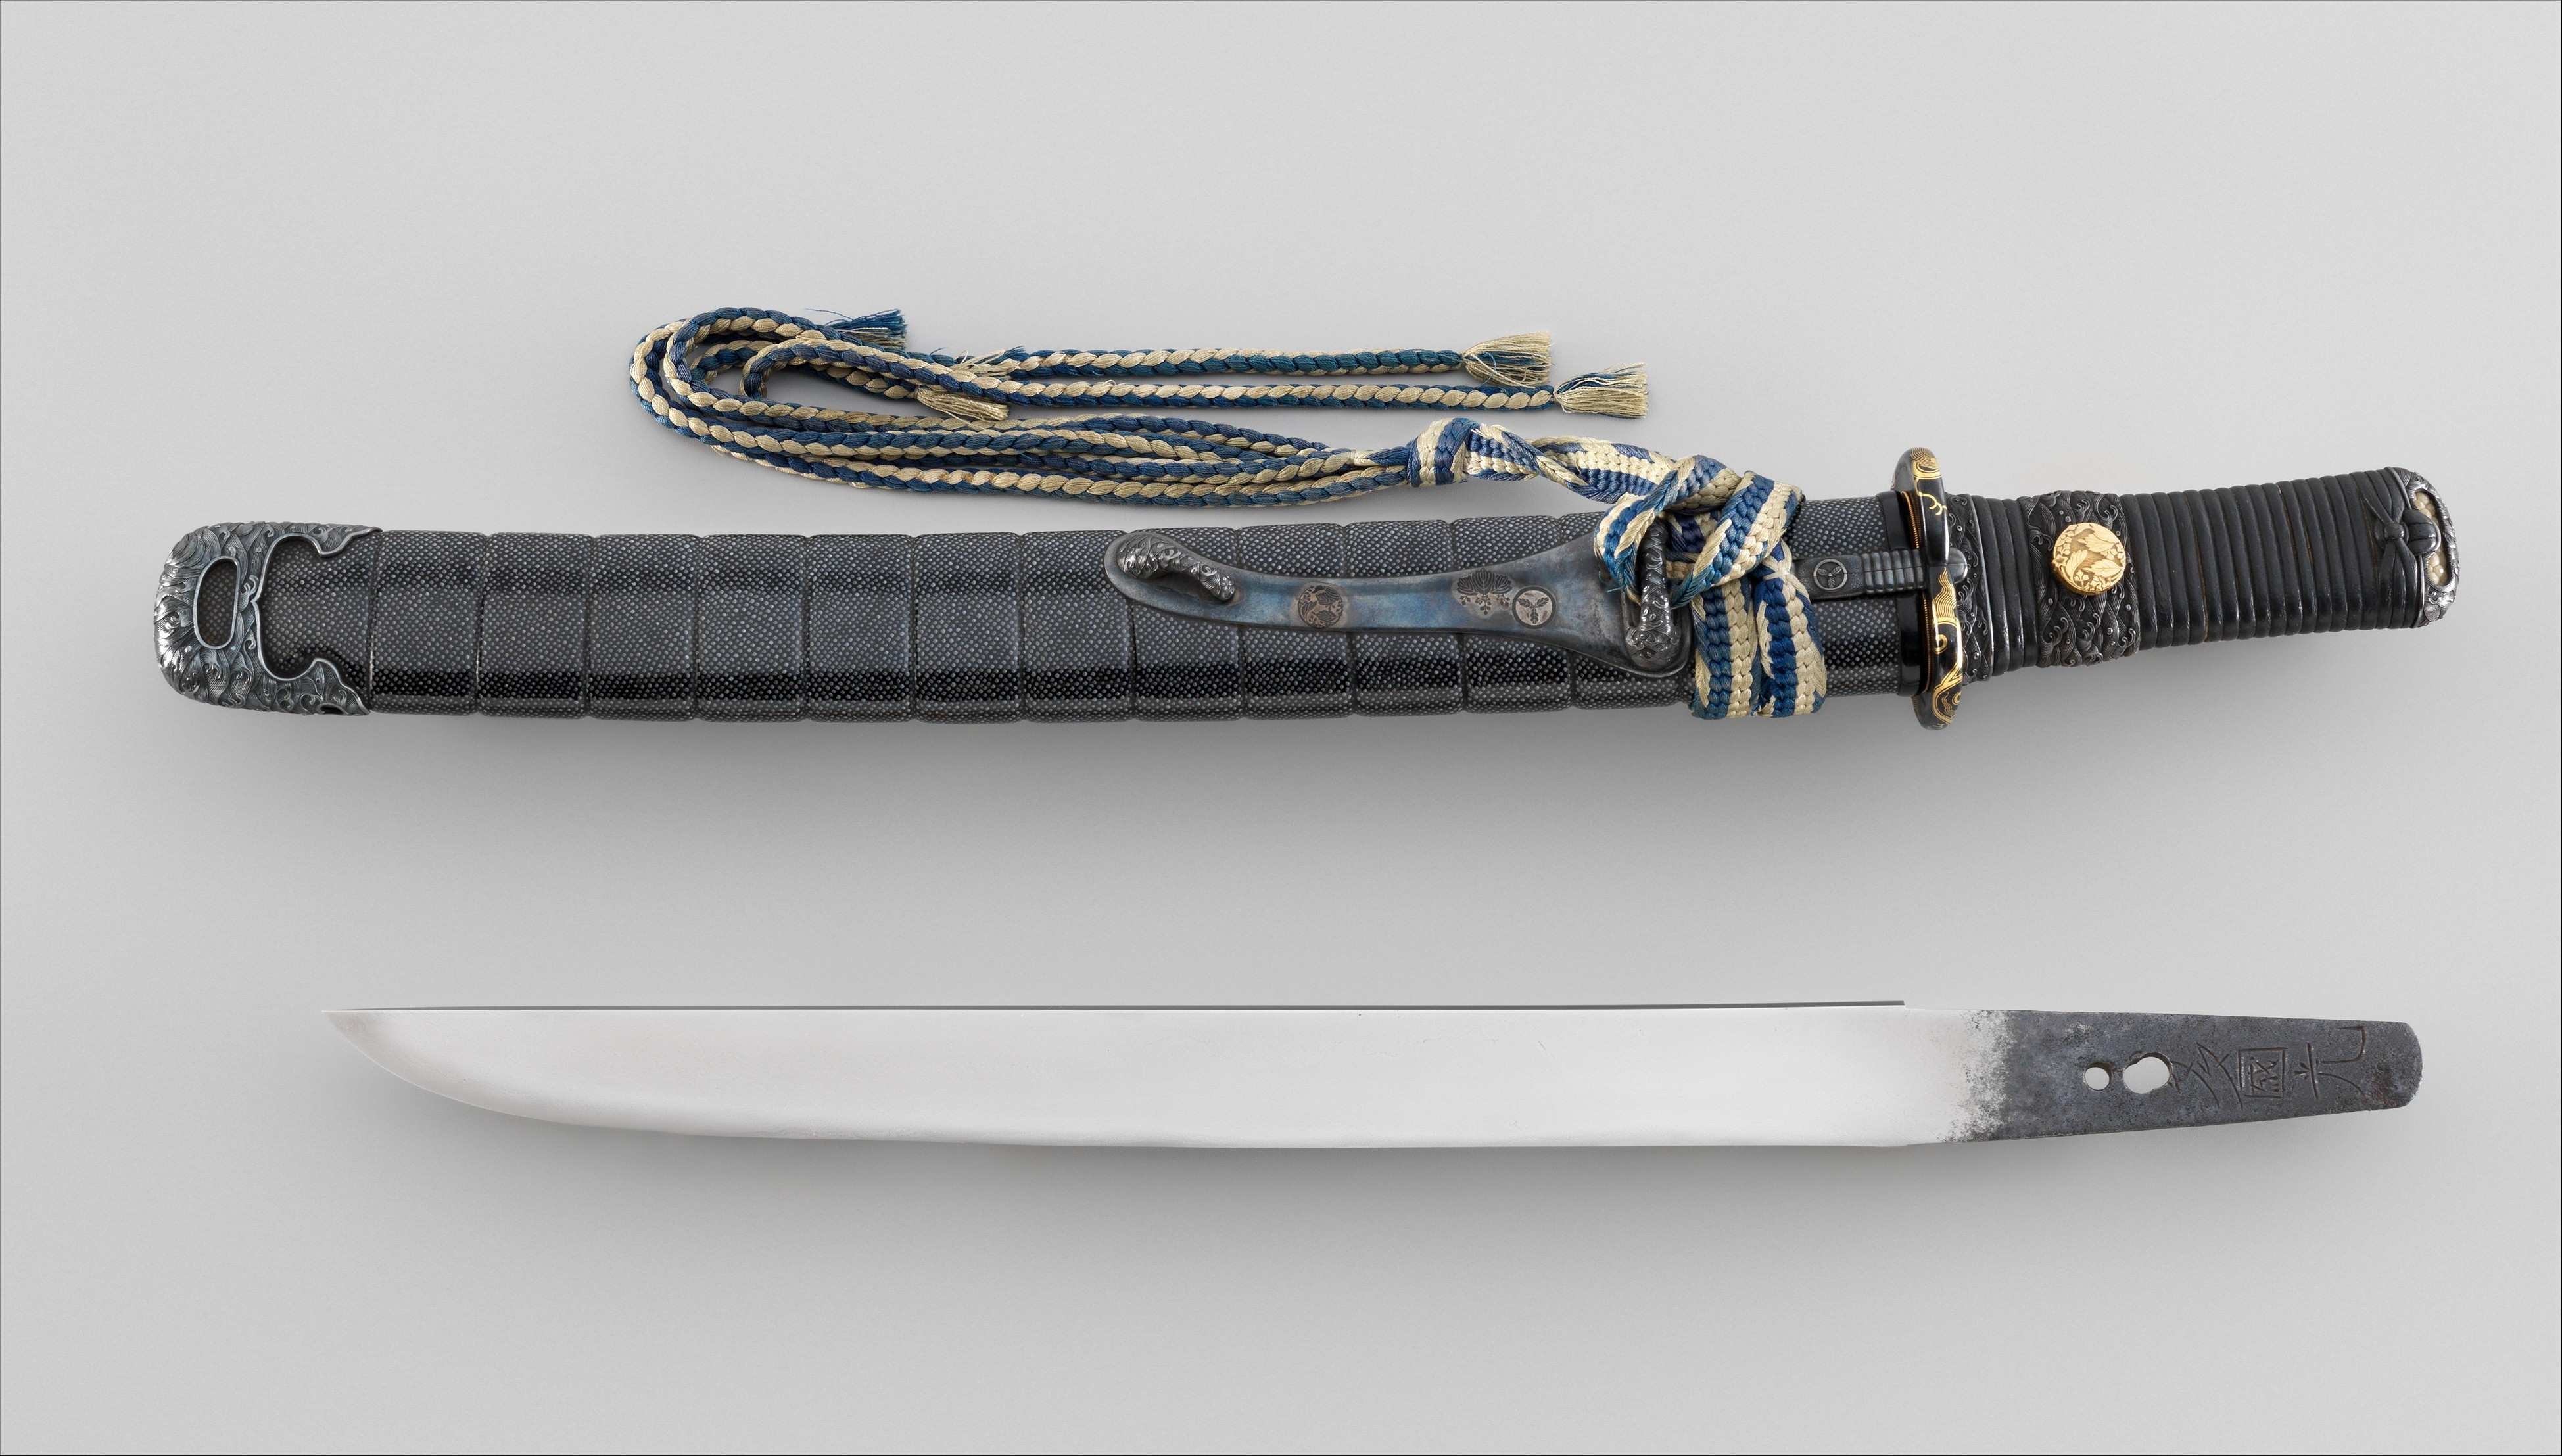 Blade_and_Mounting_for_a_Dagger_%28Tant%C5%8D%29_MET_DP370483.jpg